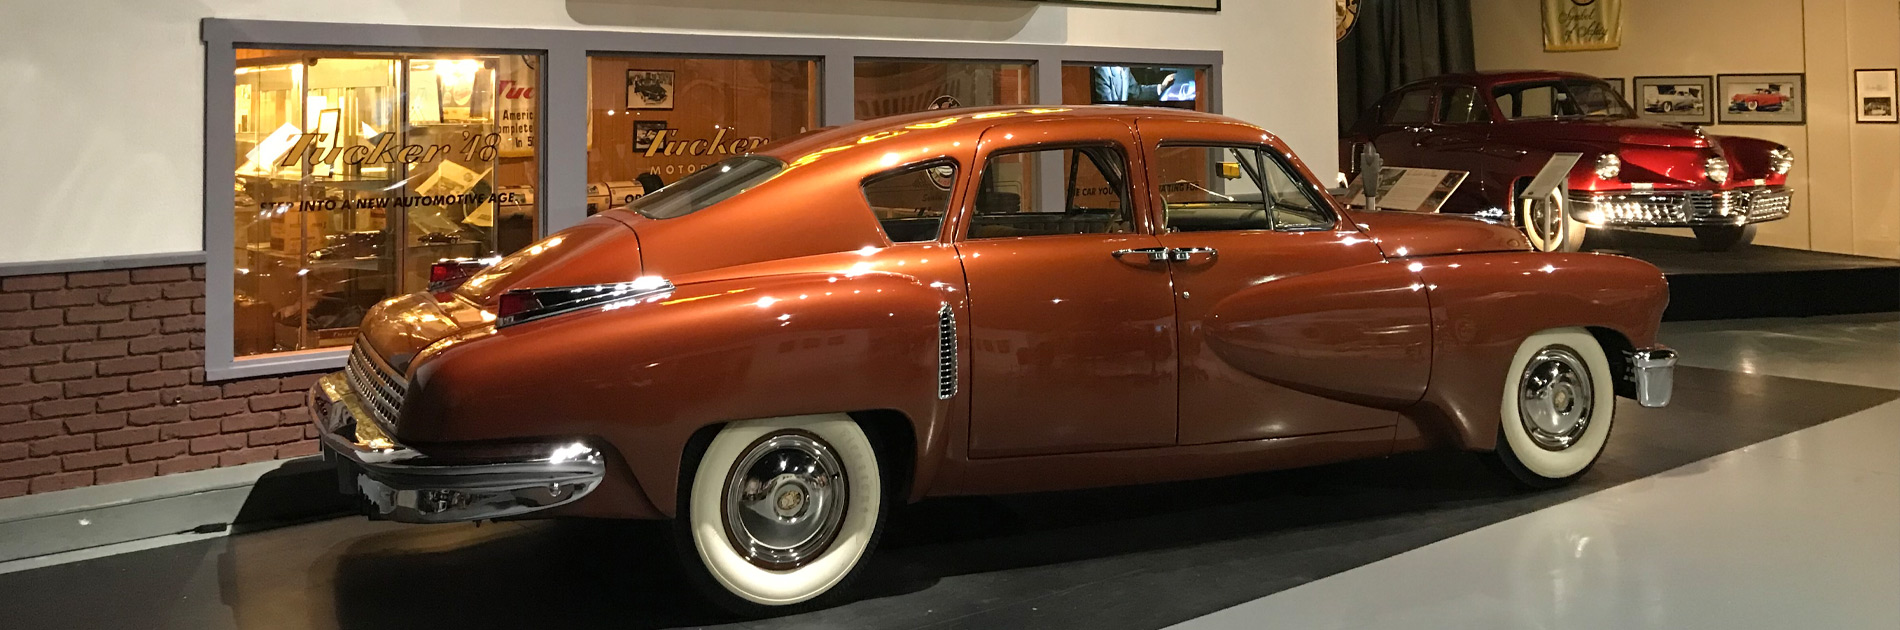 Home to the World's Largest Tucker Collection